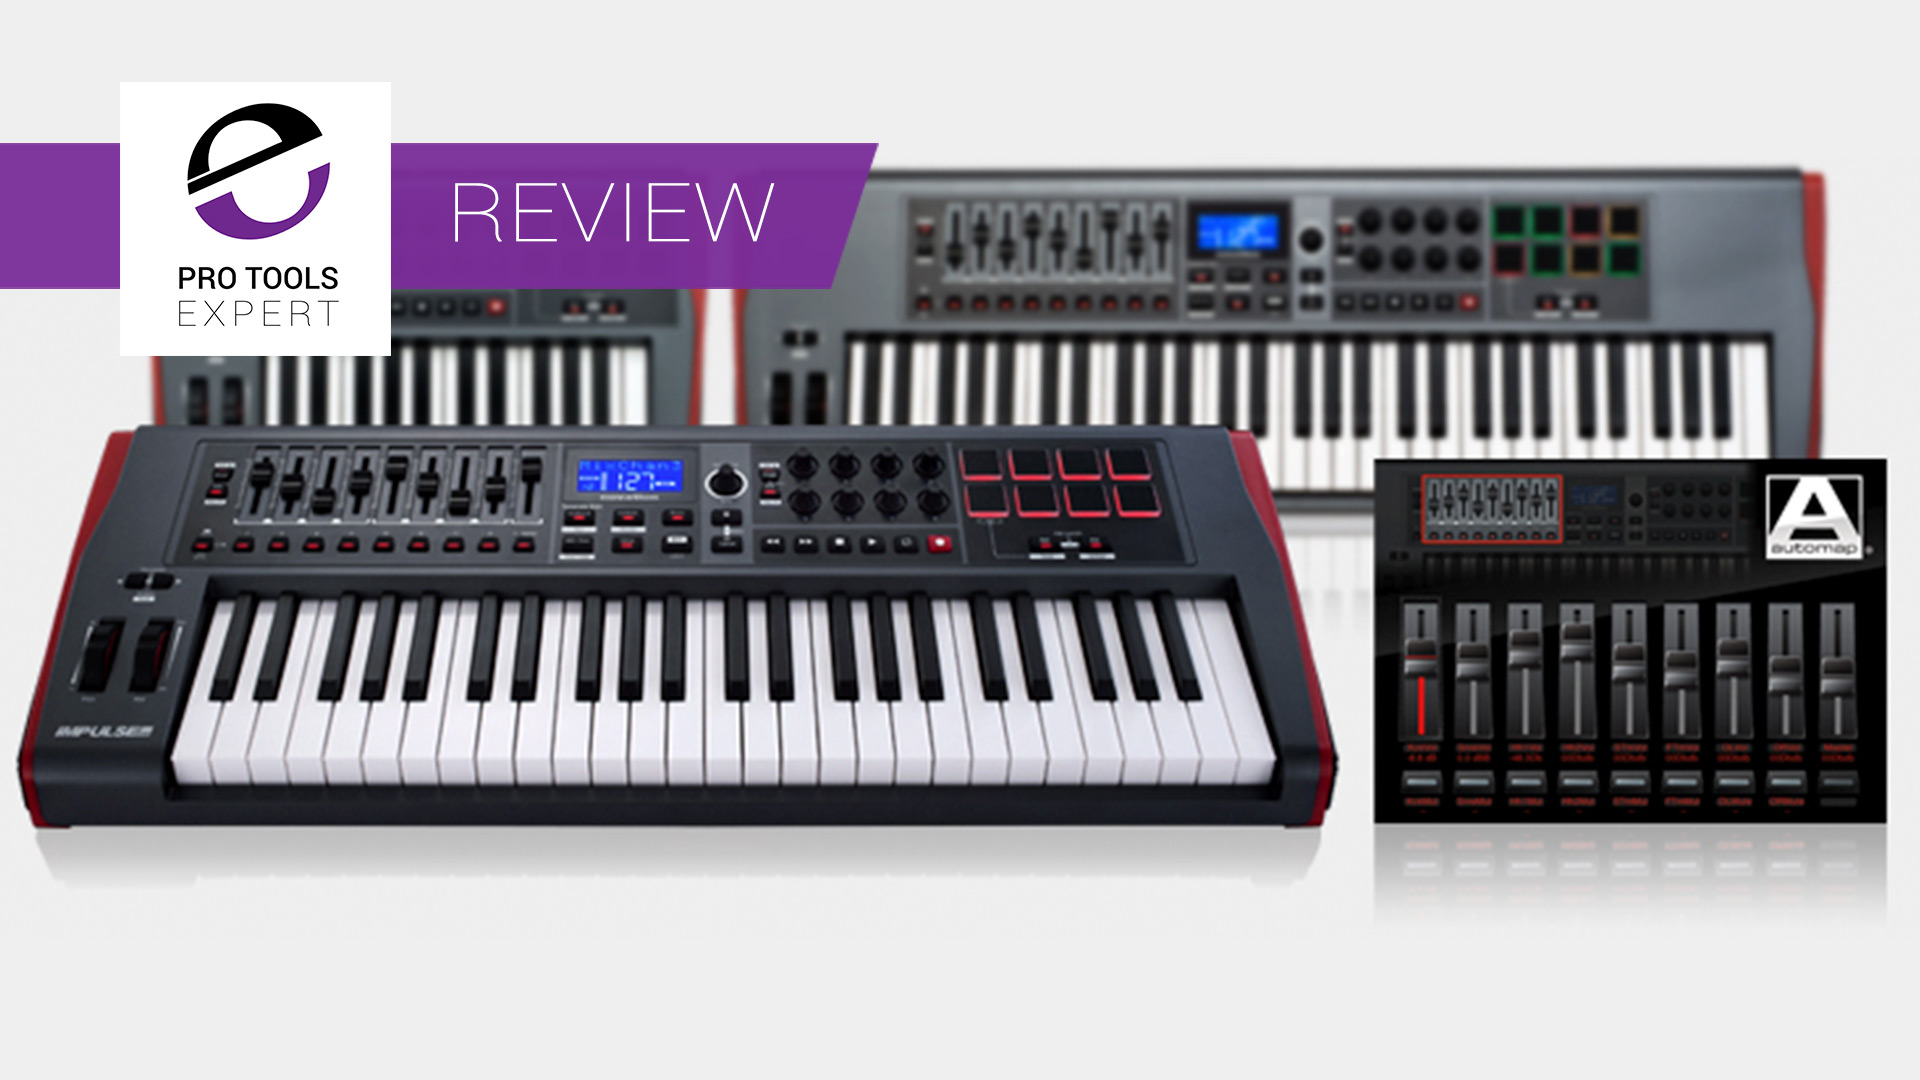 Novation-Impulse-Keyboard-Controller-Review-pro-tools-expert.jpg